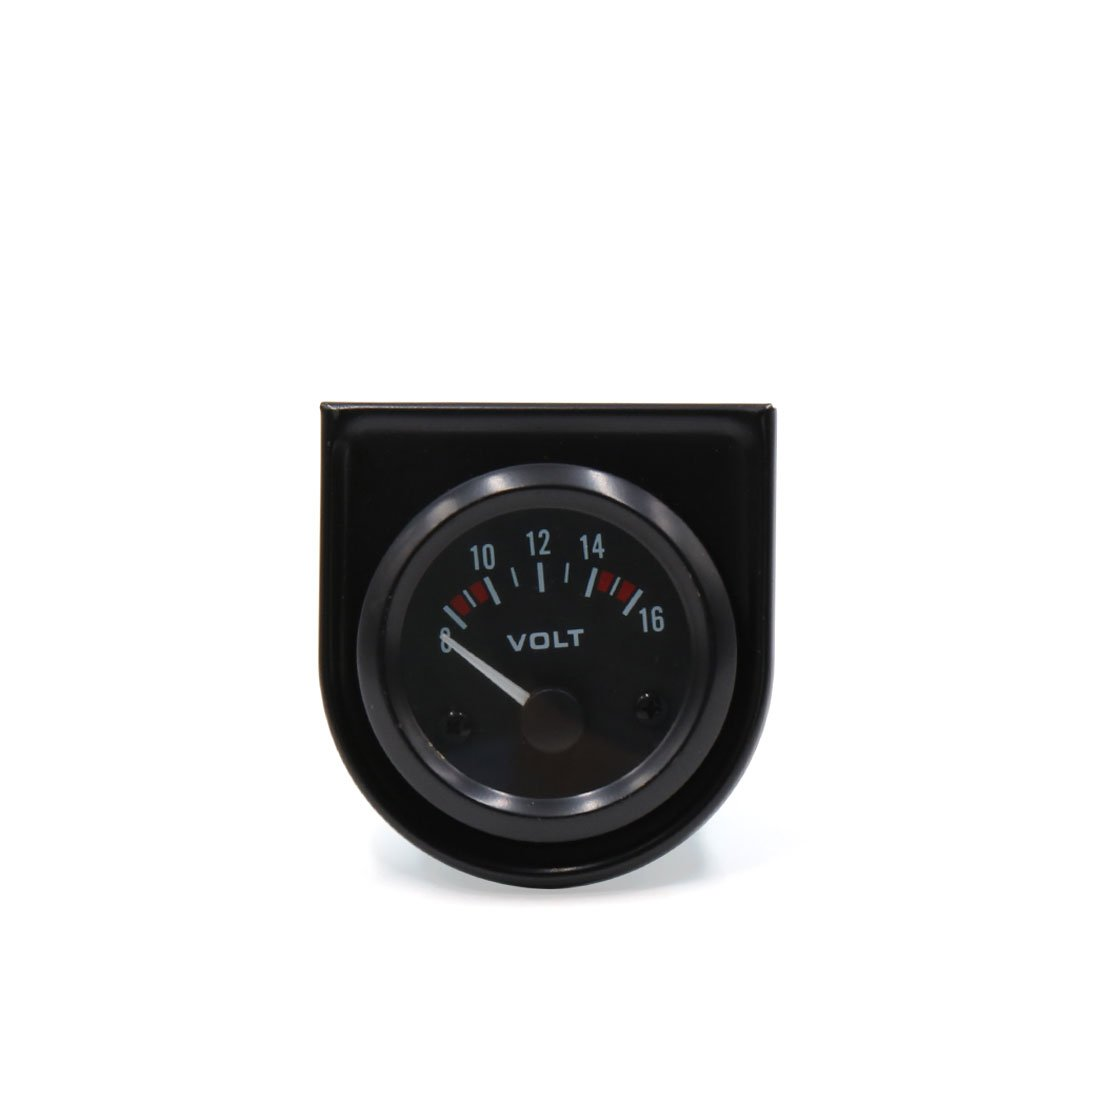 uxcell a16121600ux0601 Voltage Pointer Meter